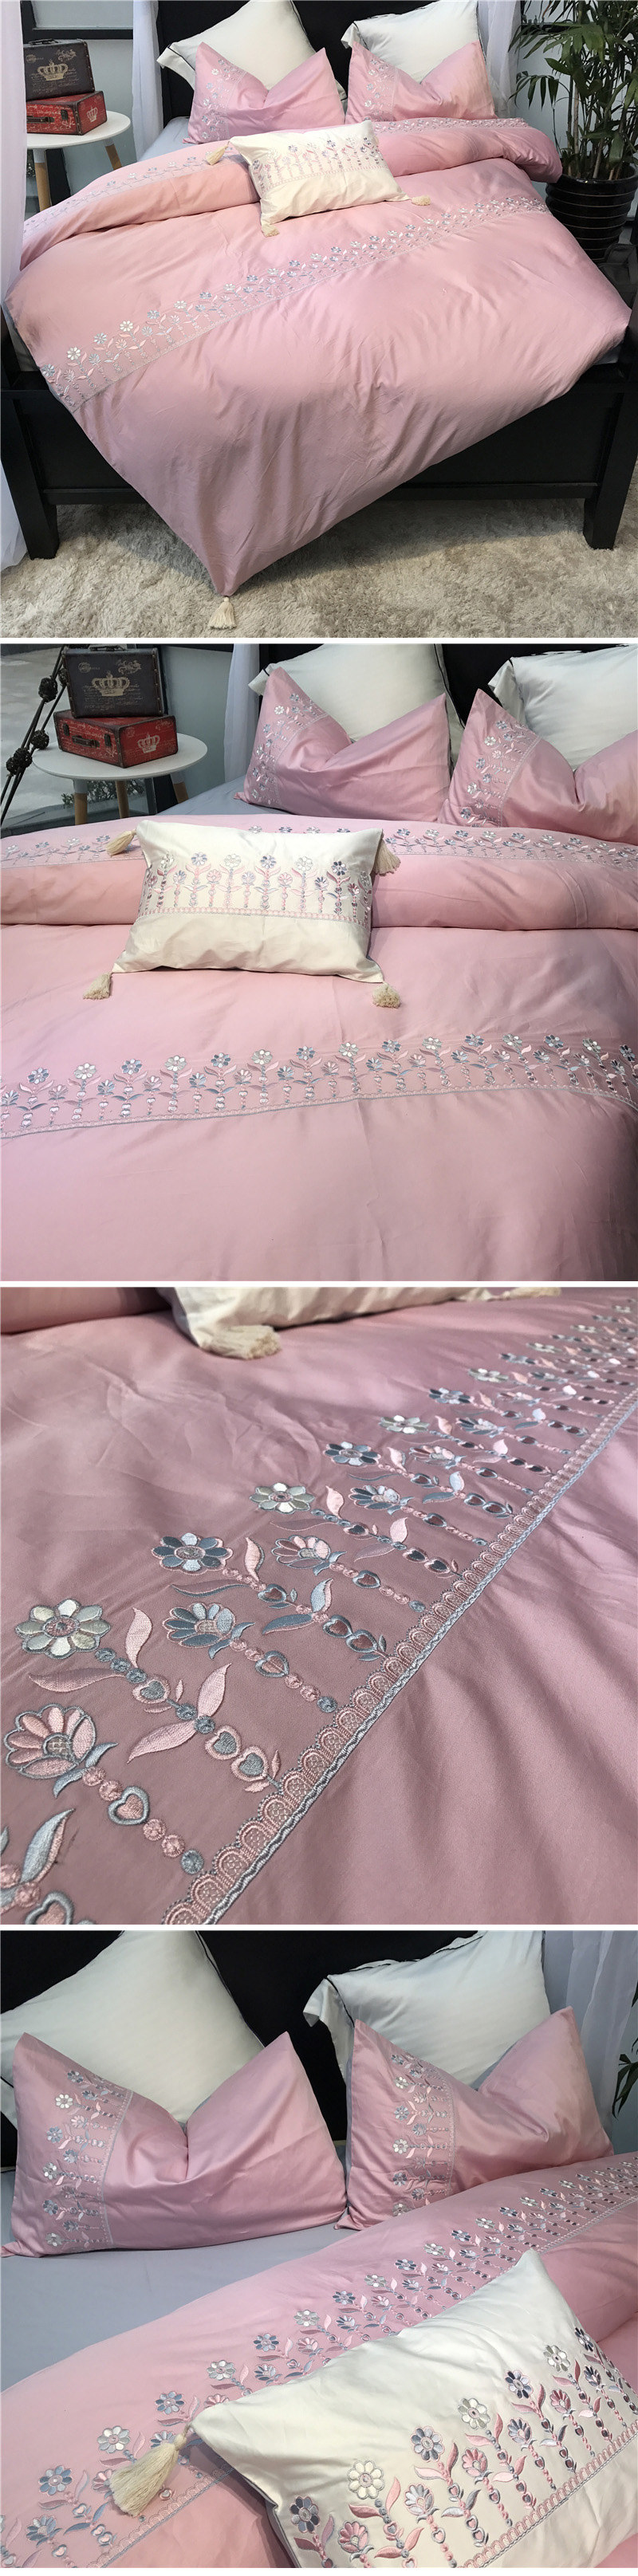 Wedding bedding sets king size 60s satin long staple cotton bed sheets romantic lace embroidery duvet cover bed linen 3